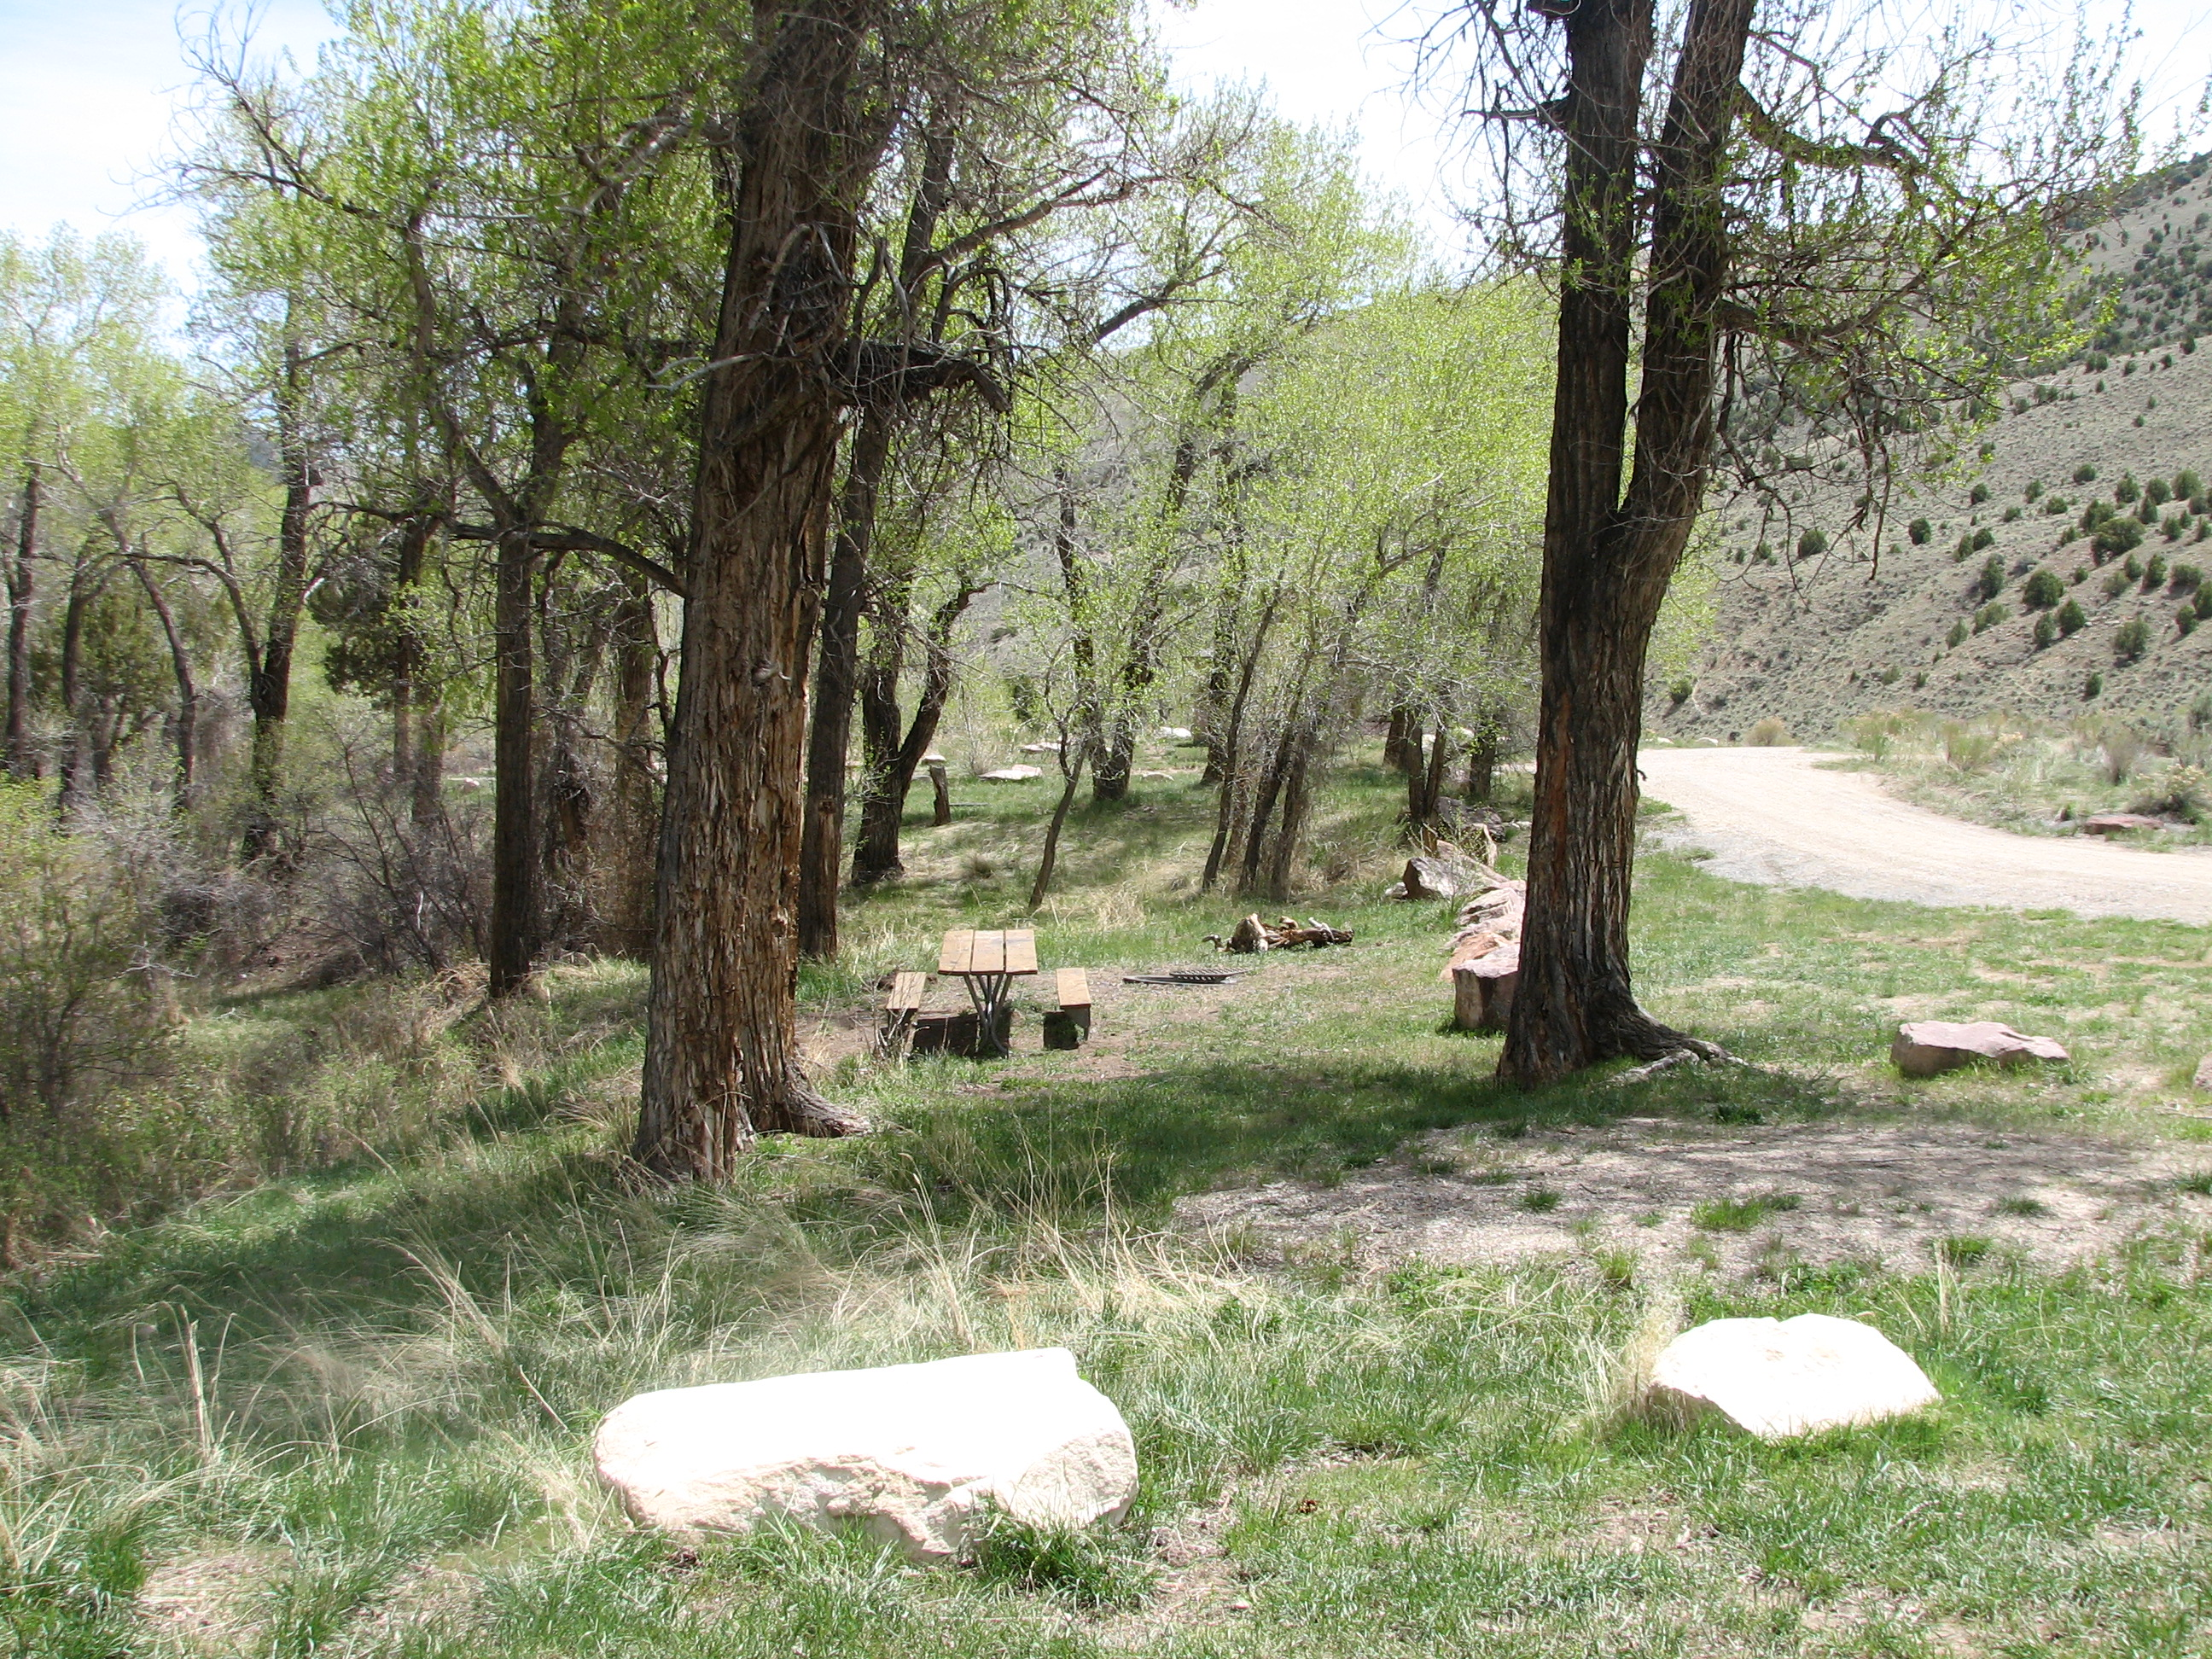 Photo of a site at the Manns Campground.